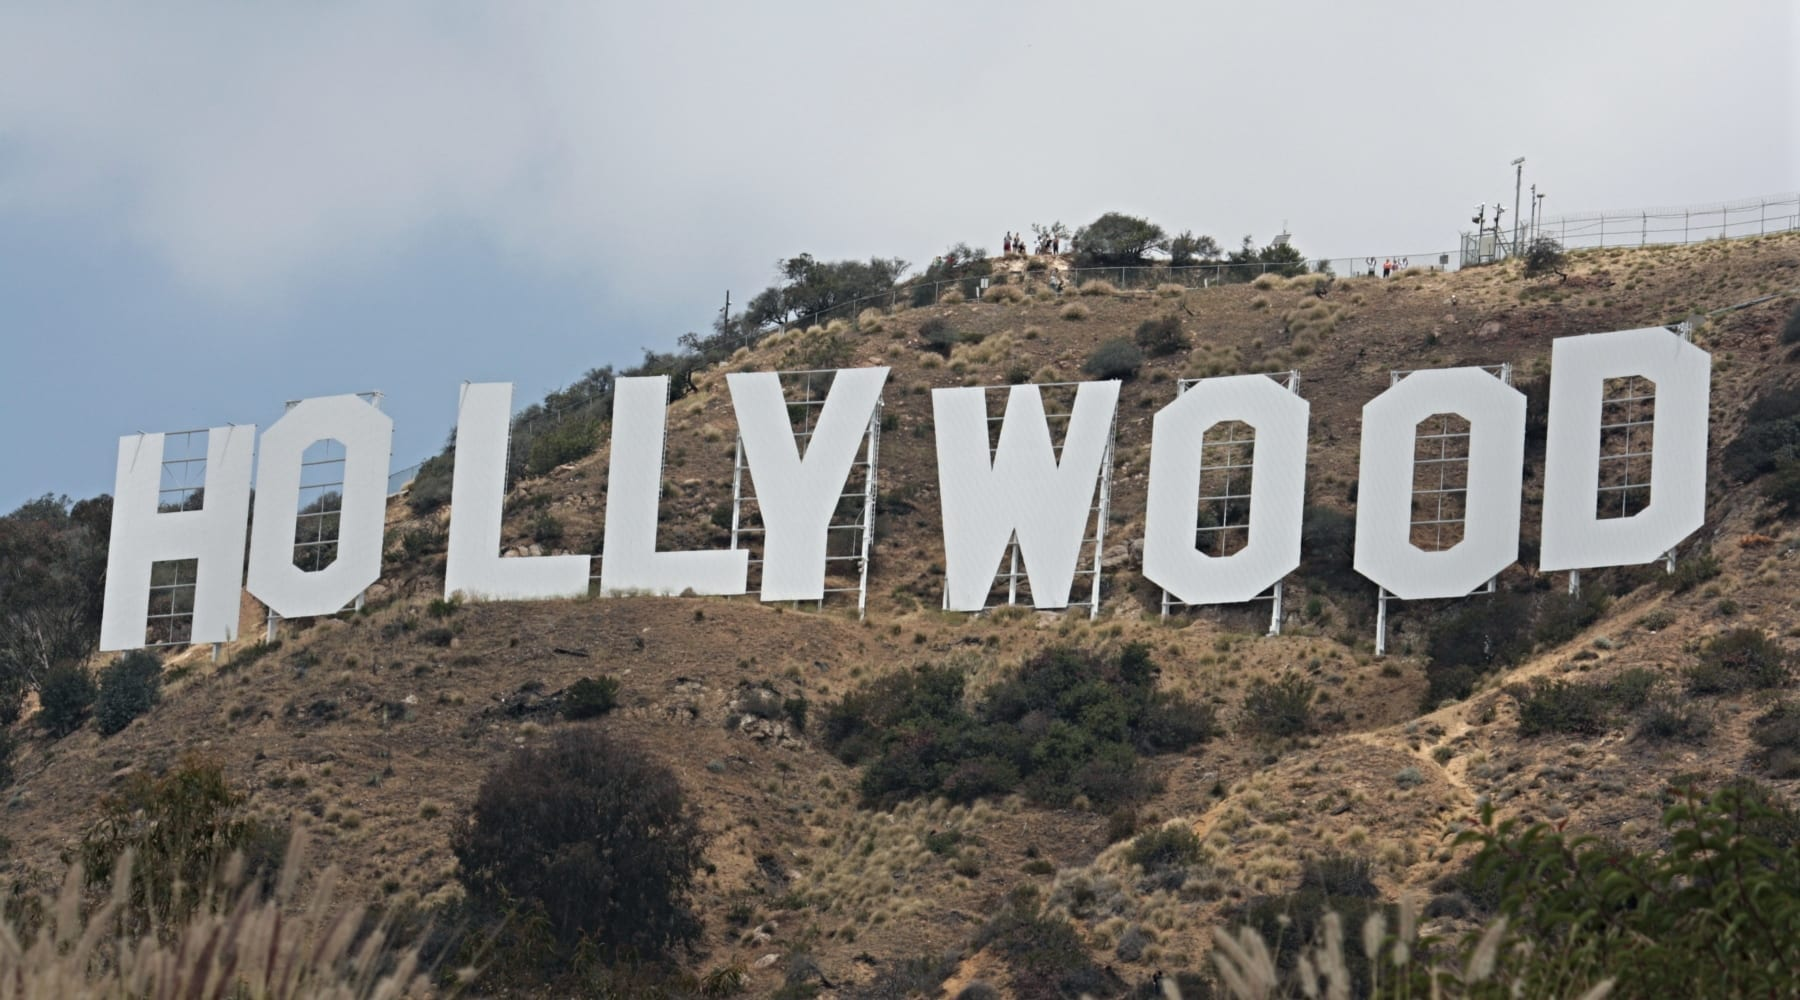 When Hollywood Loses the Plot Portraying Faith in Film